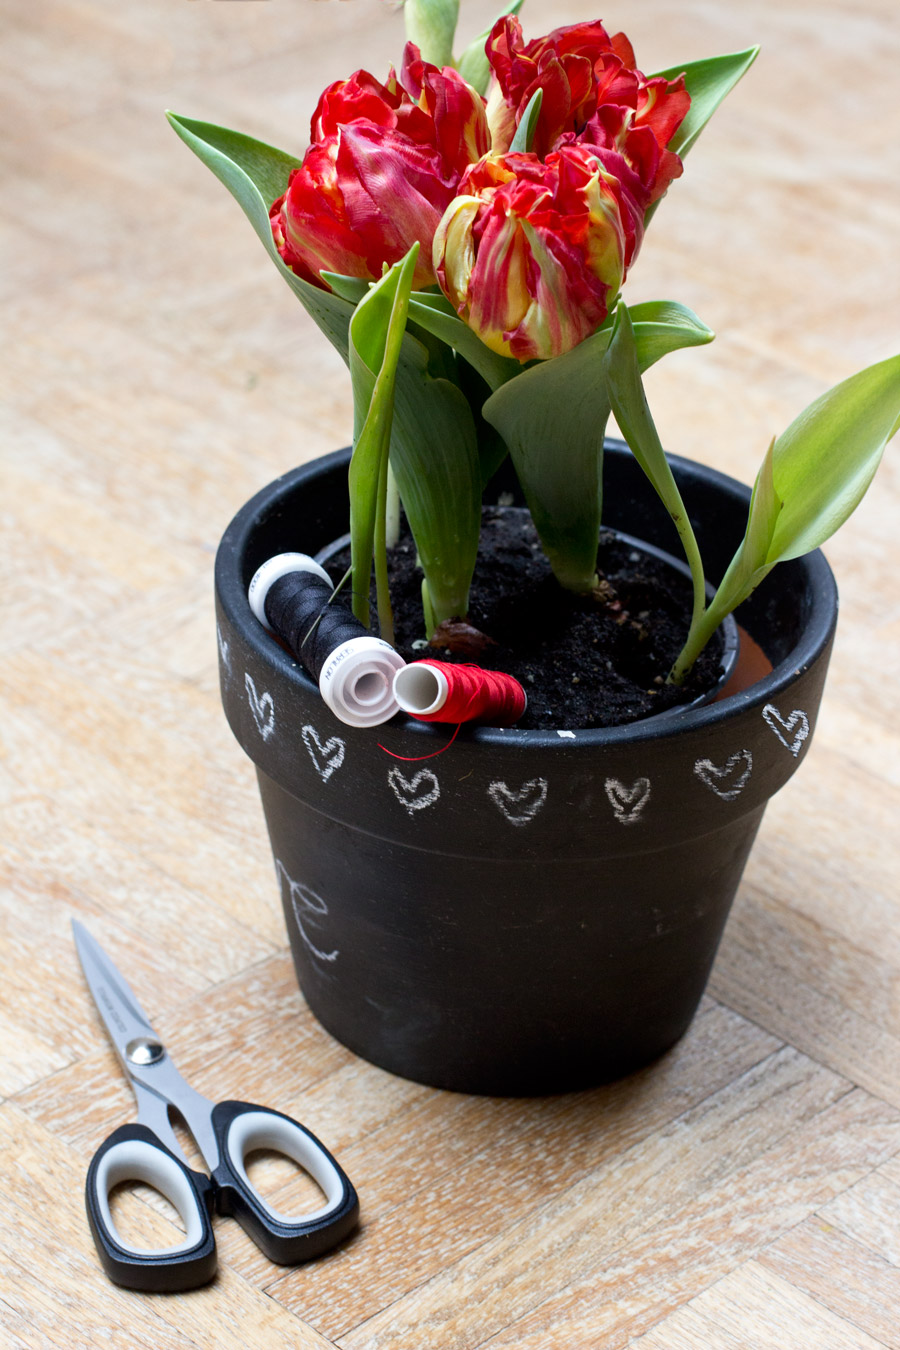 All you need for embroidered flowers